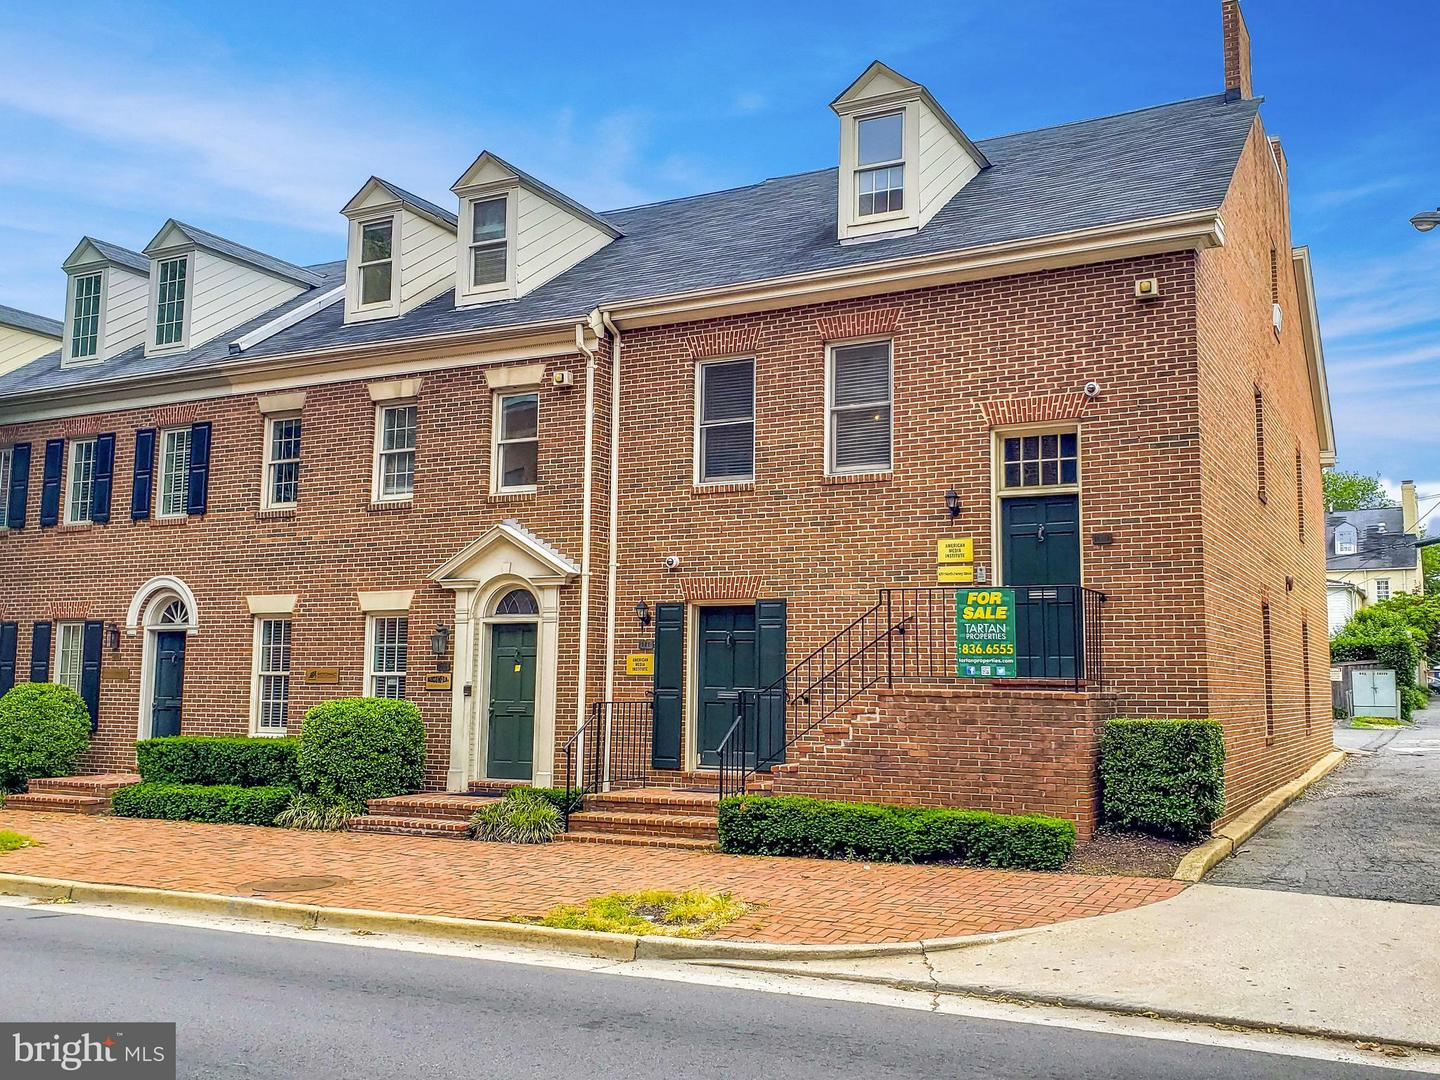 Commercial for Sale at 109 Henry St N Alexandria, Virginia 22314 United States